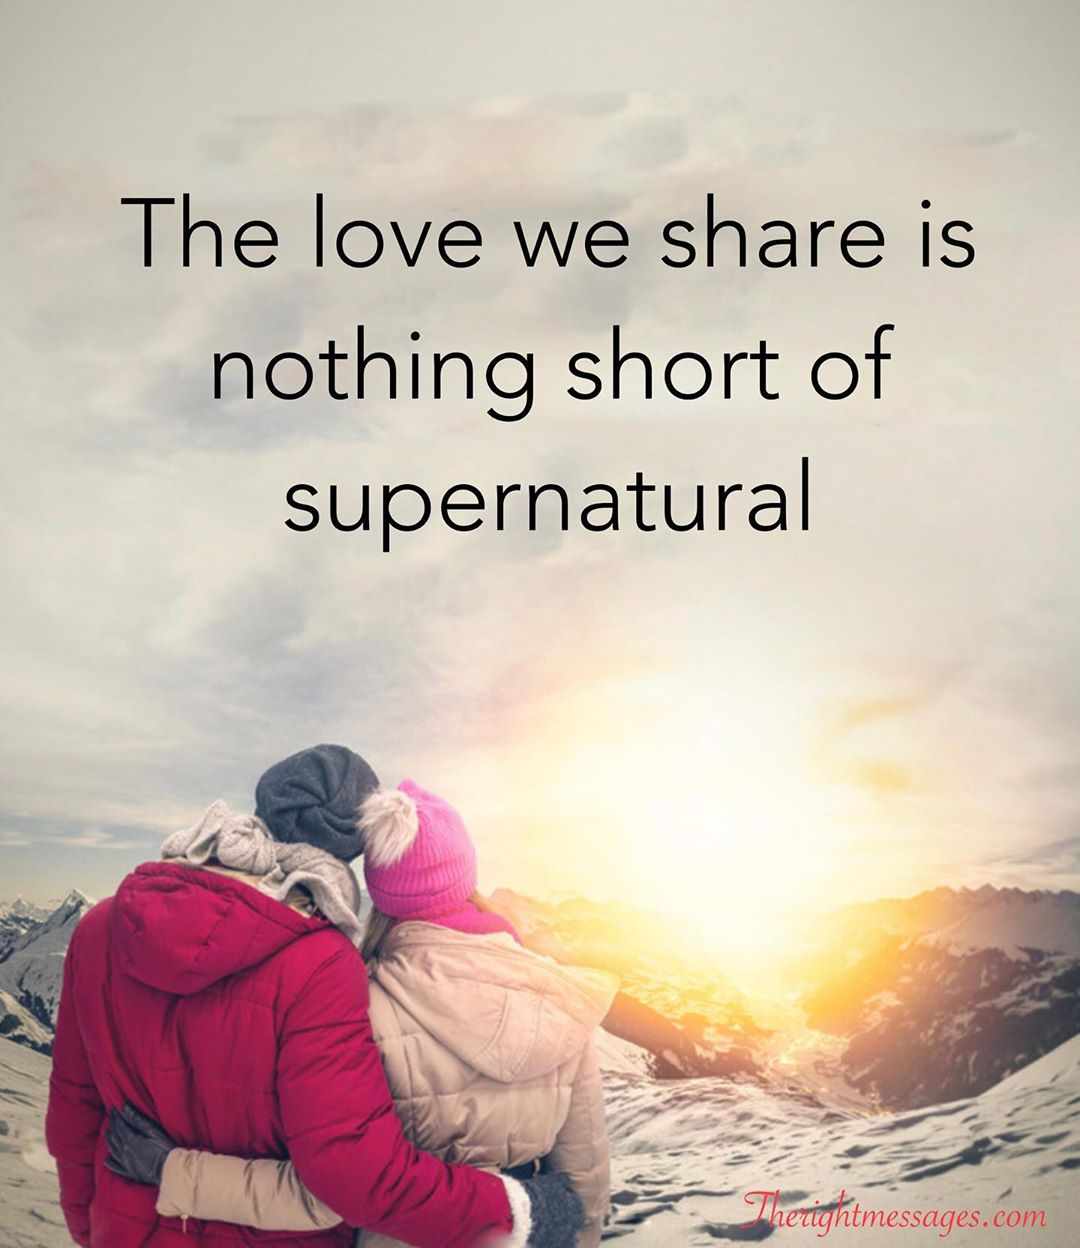 Heart Touching Romantic Quotes For Romantic